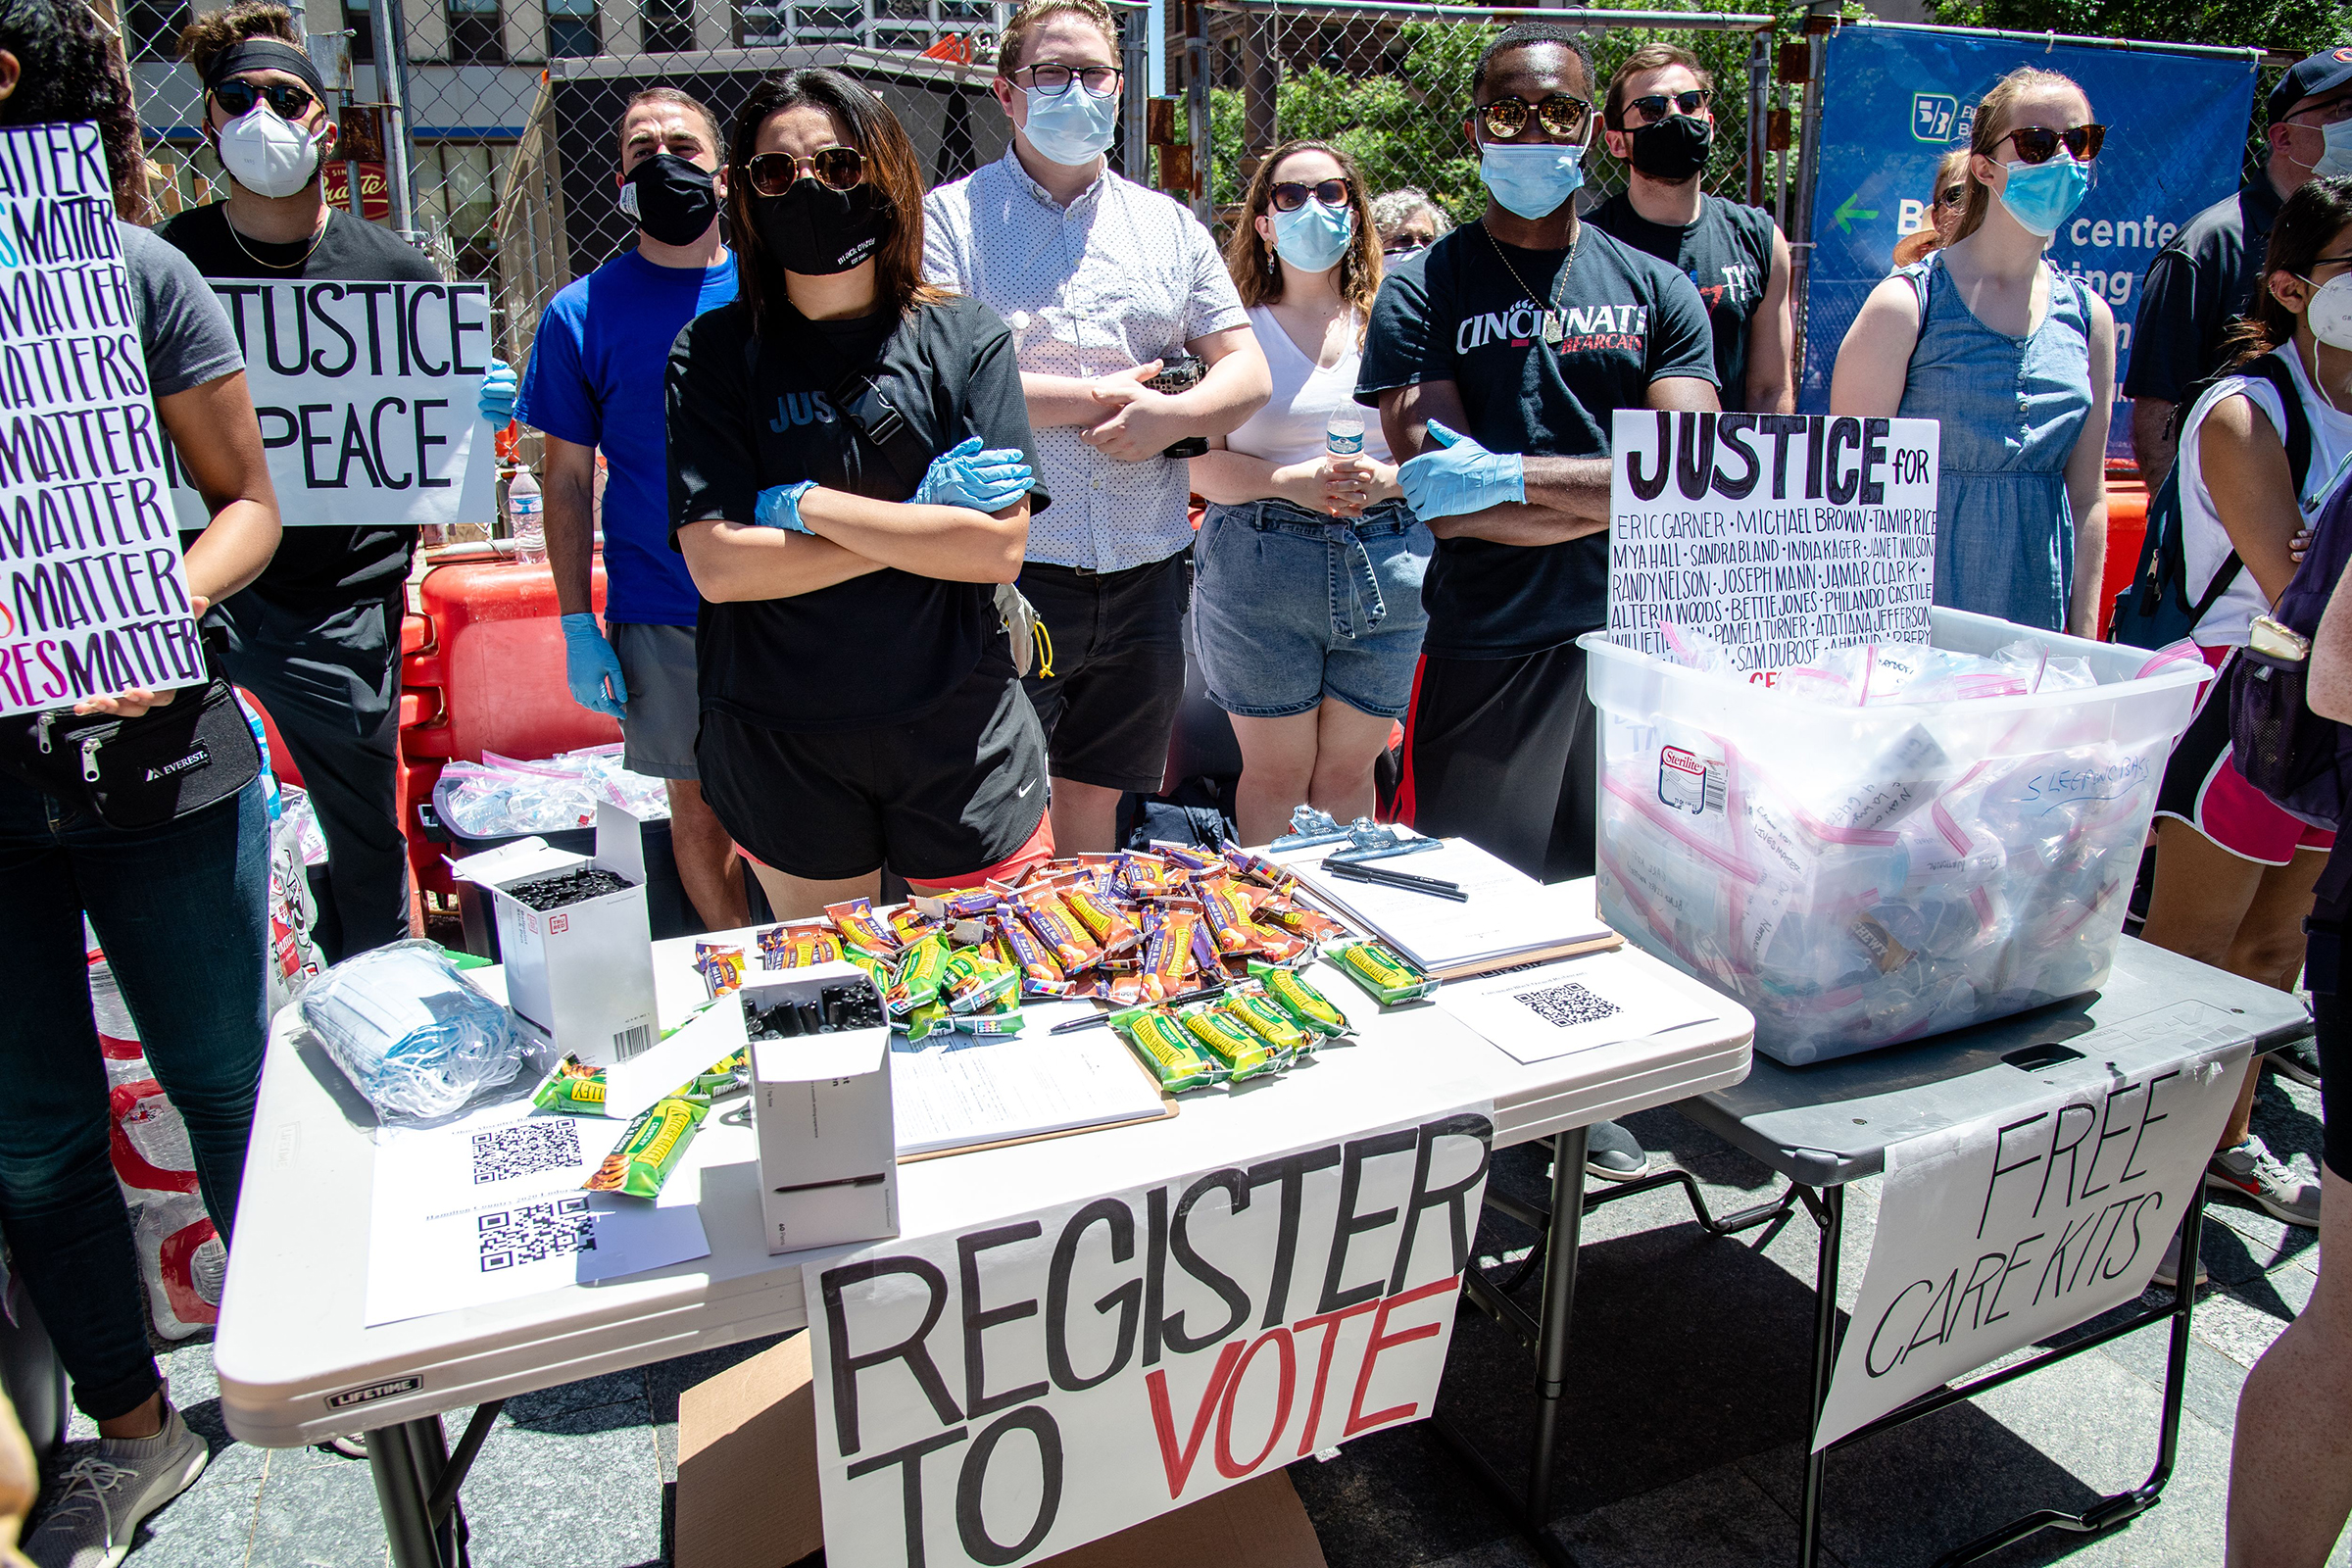 A voter registration station setup in Cincinnati following demonstrations around the world against police brutality and racial injustice sparked by the death of George Floyd, on June 7, 2020.